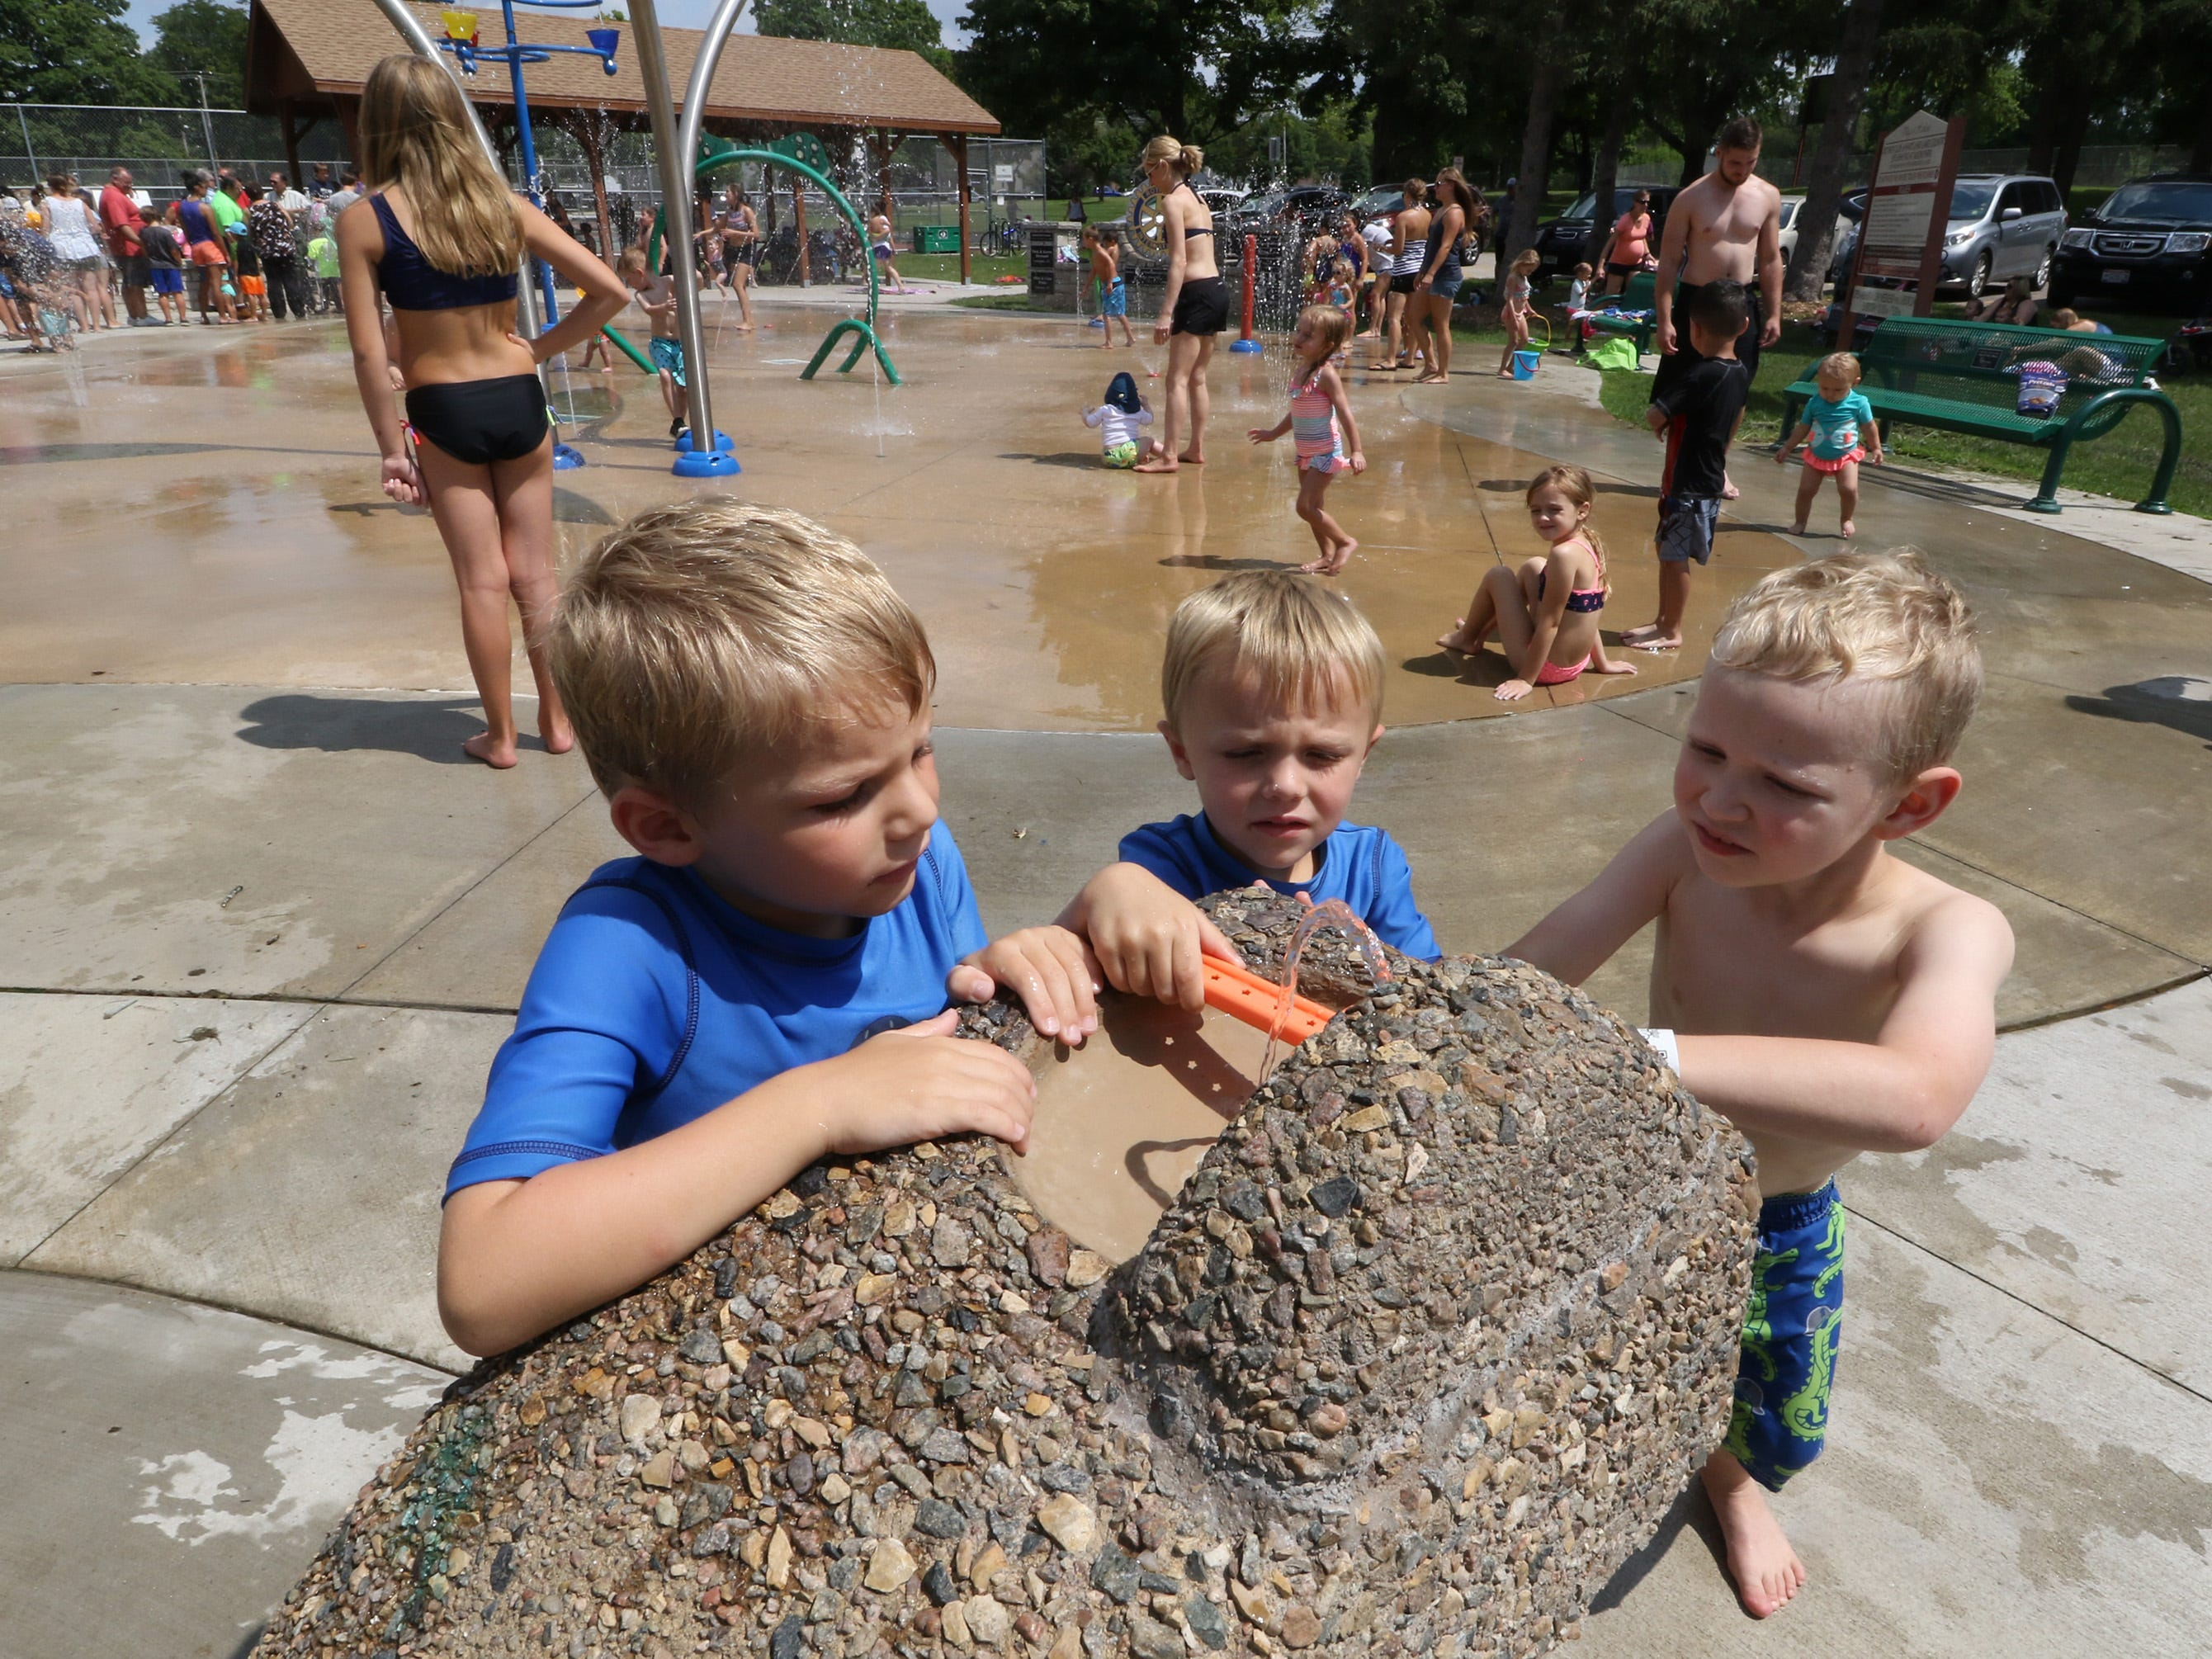 Jack Adams (left), Alex Adams and Fischer Paul play with the water fountain at the Lake Country Rotary Splash Pad in Nixon Park in Hartland on Aug. 3. The Rotary hosted an Appreciation Day with a free hot dog lunch, music and prizes.